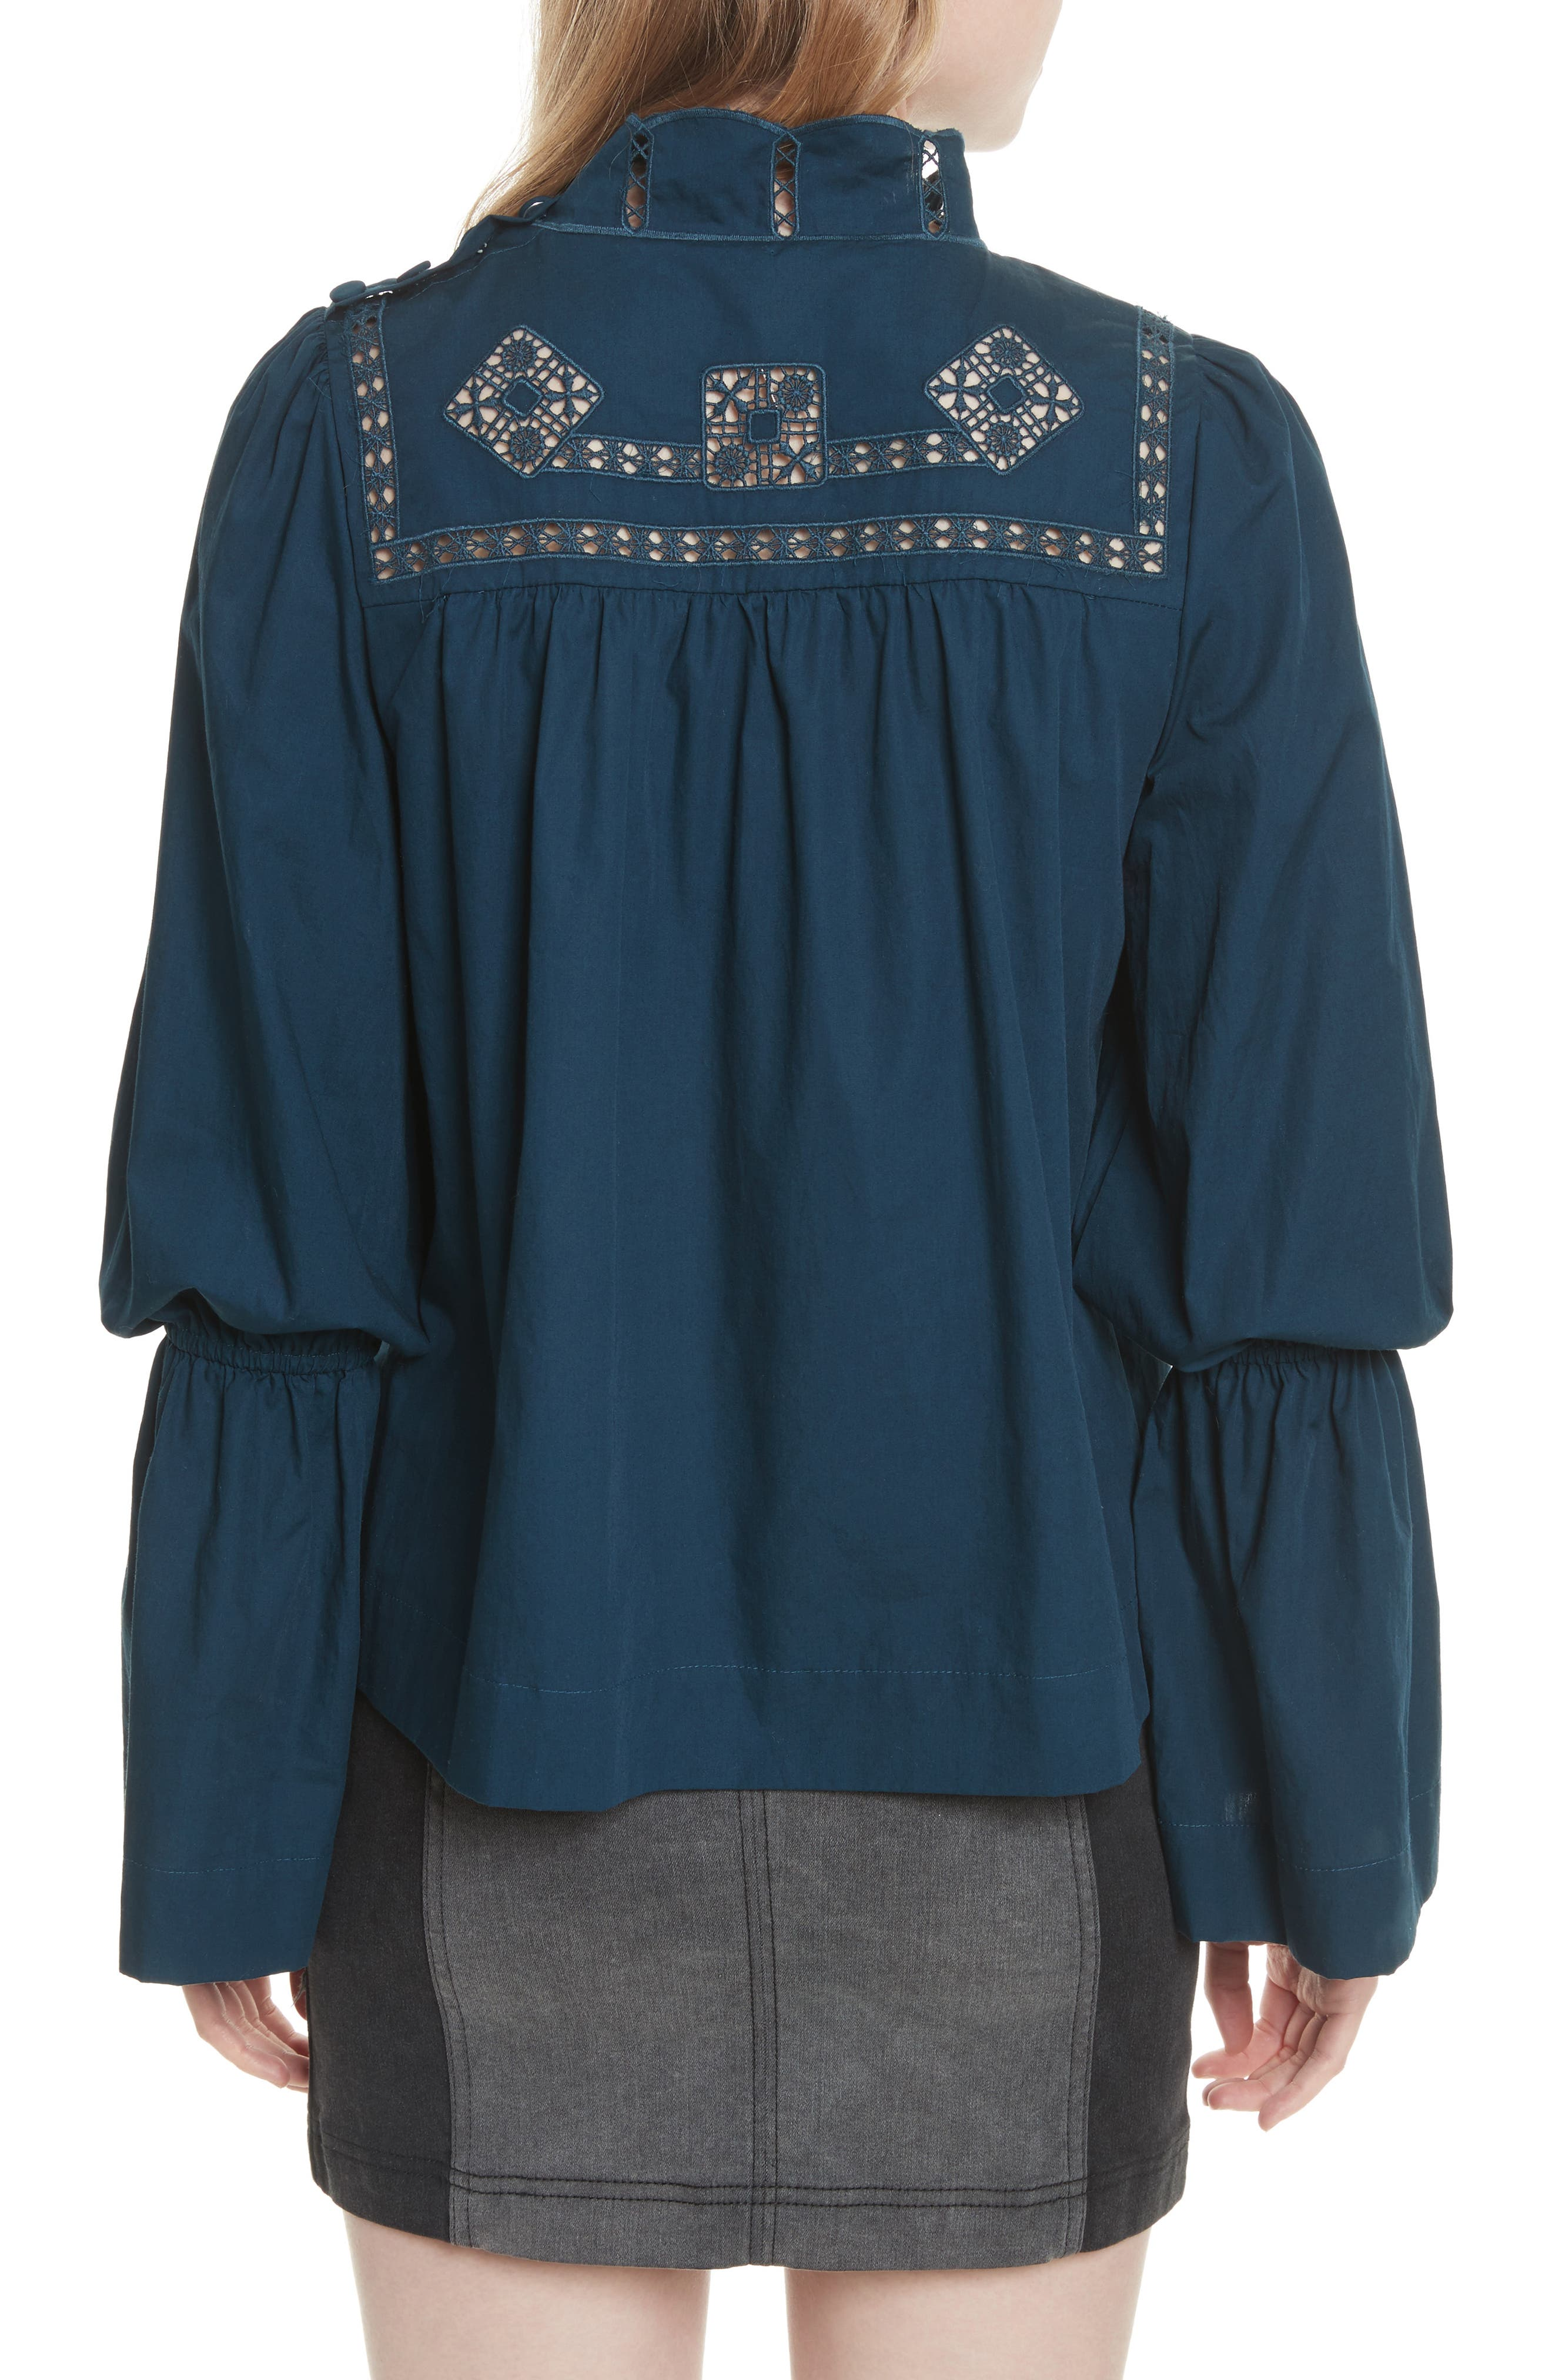 Another Eternity Blouse,                             Alternate thumbnail 2, color,                             440